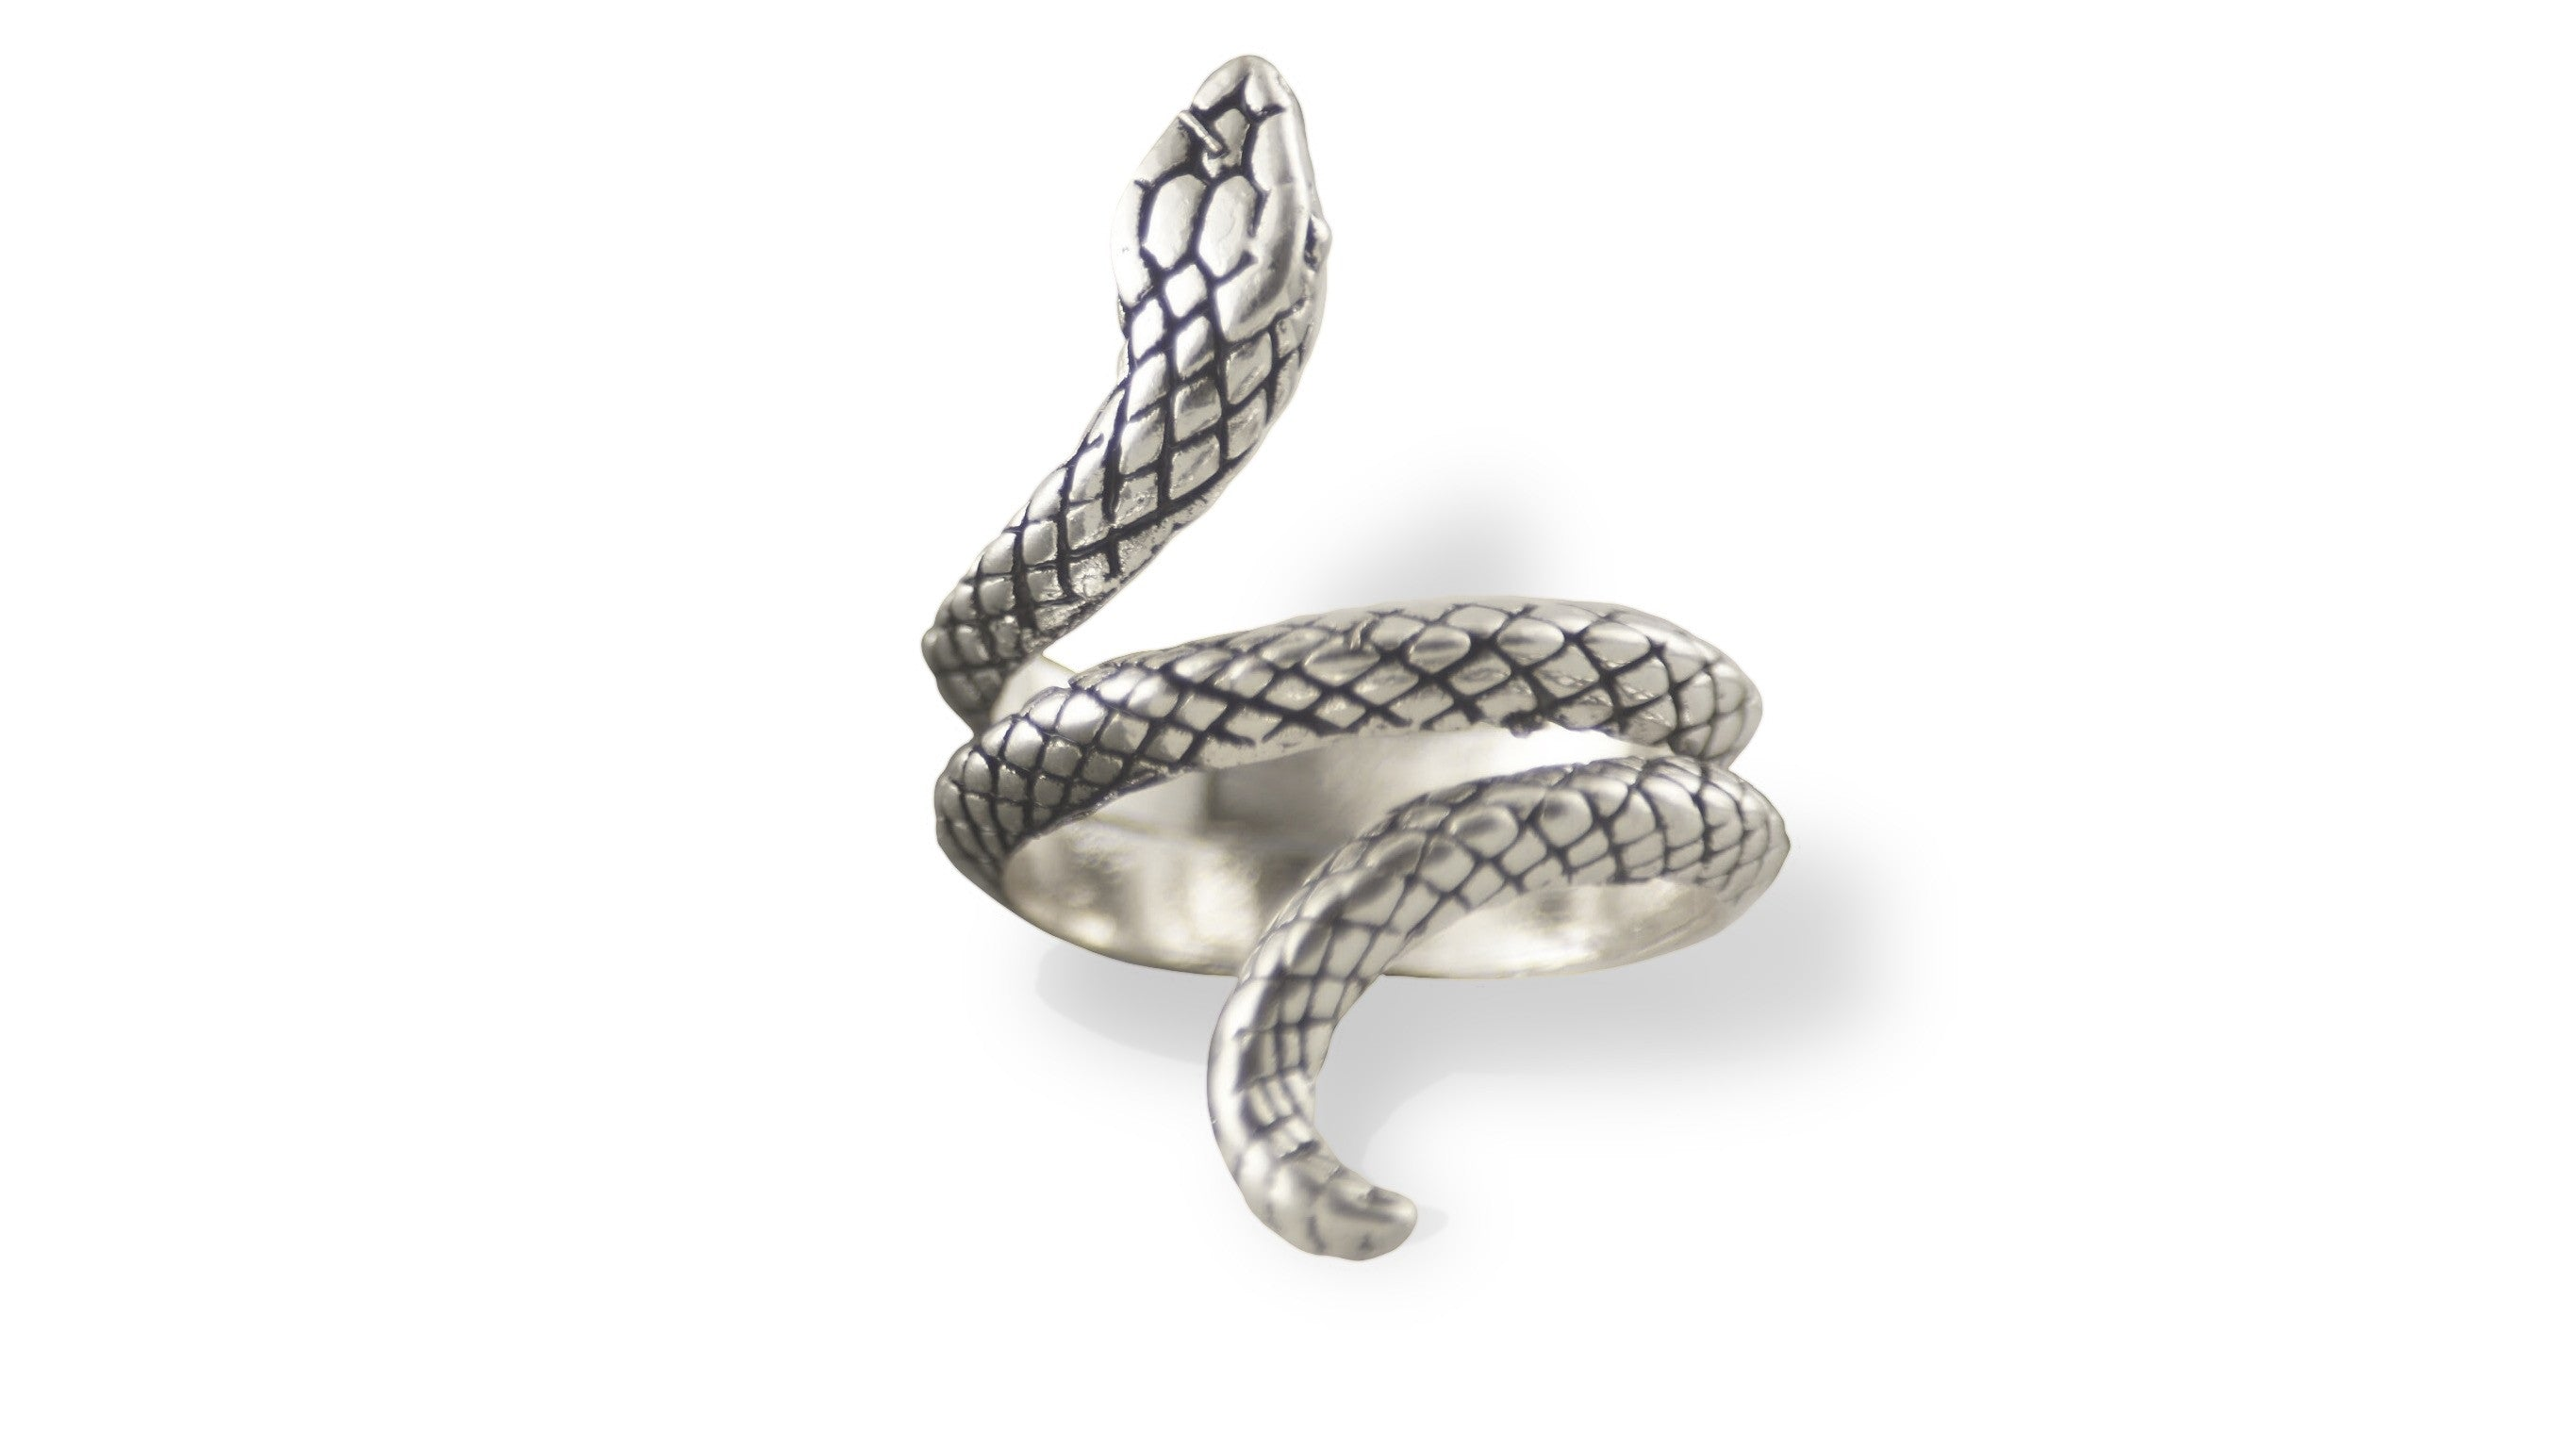 snake serpent tail zoom rings ouroboros ring listing eating infinity au il fullxfull